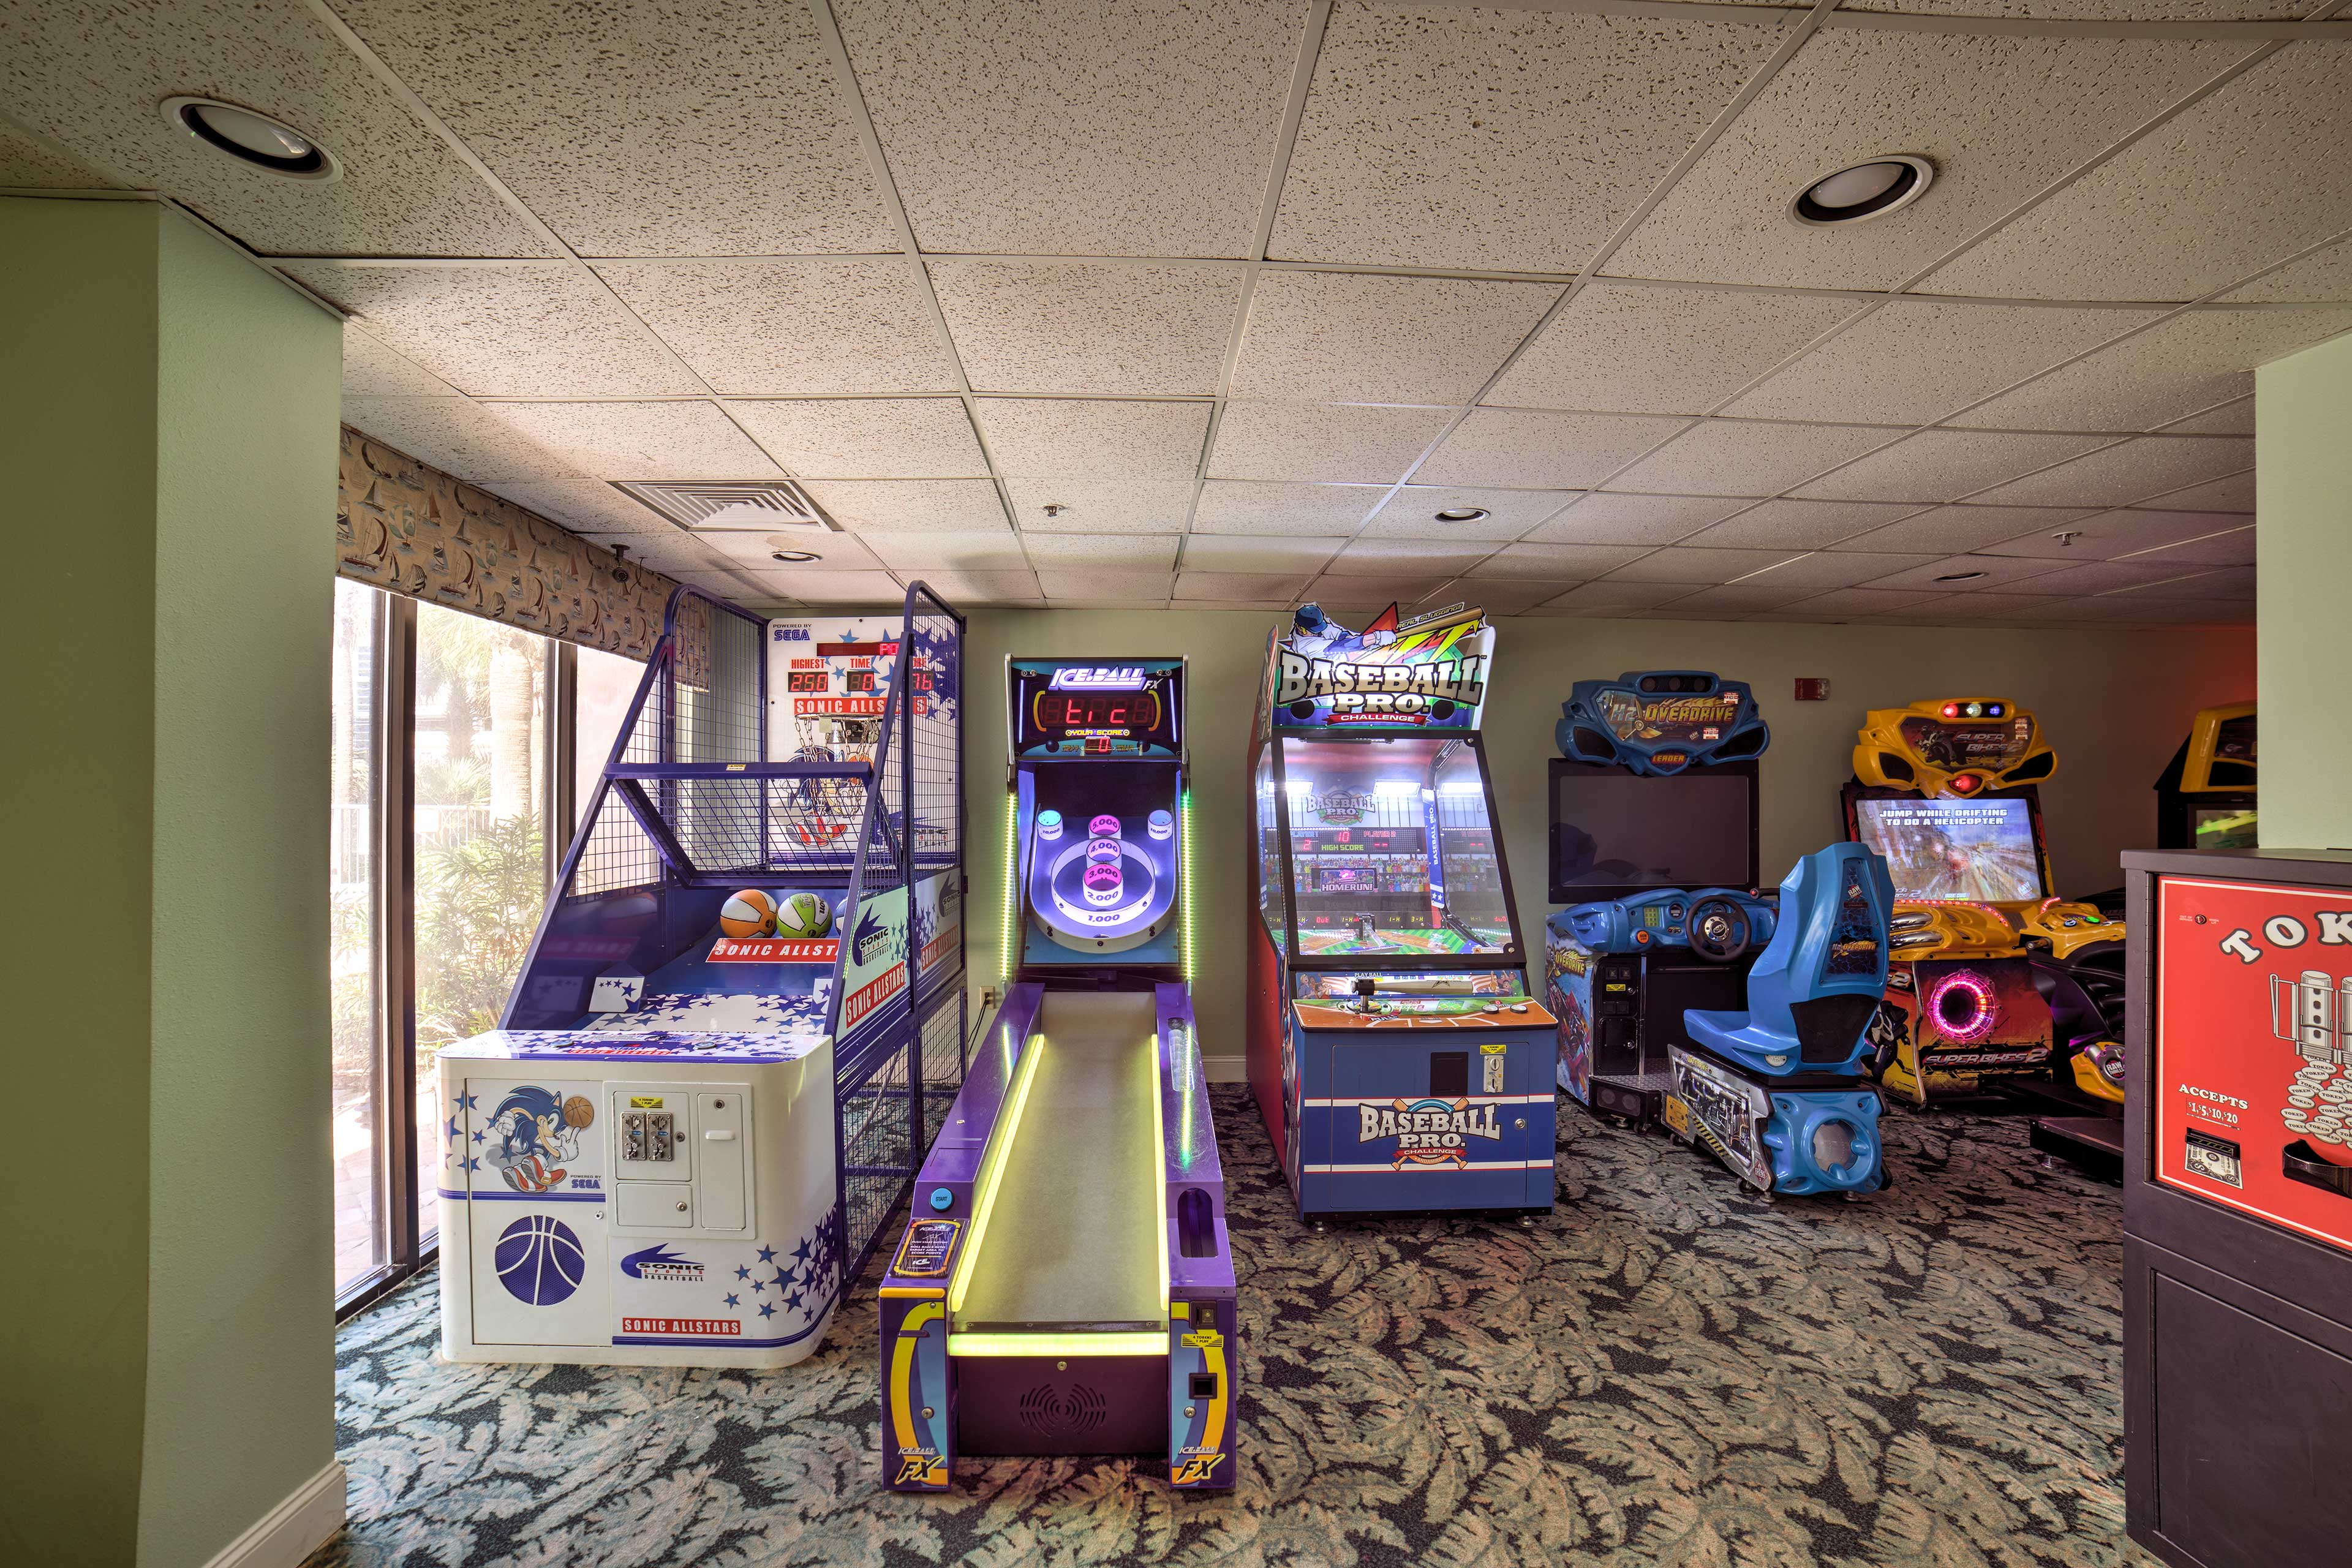 Play some arcade games with the kiddos!